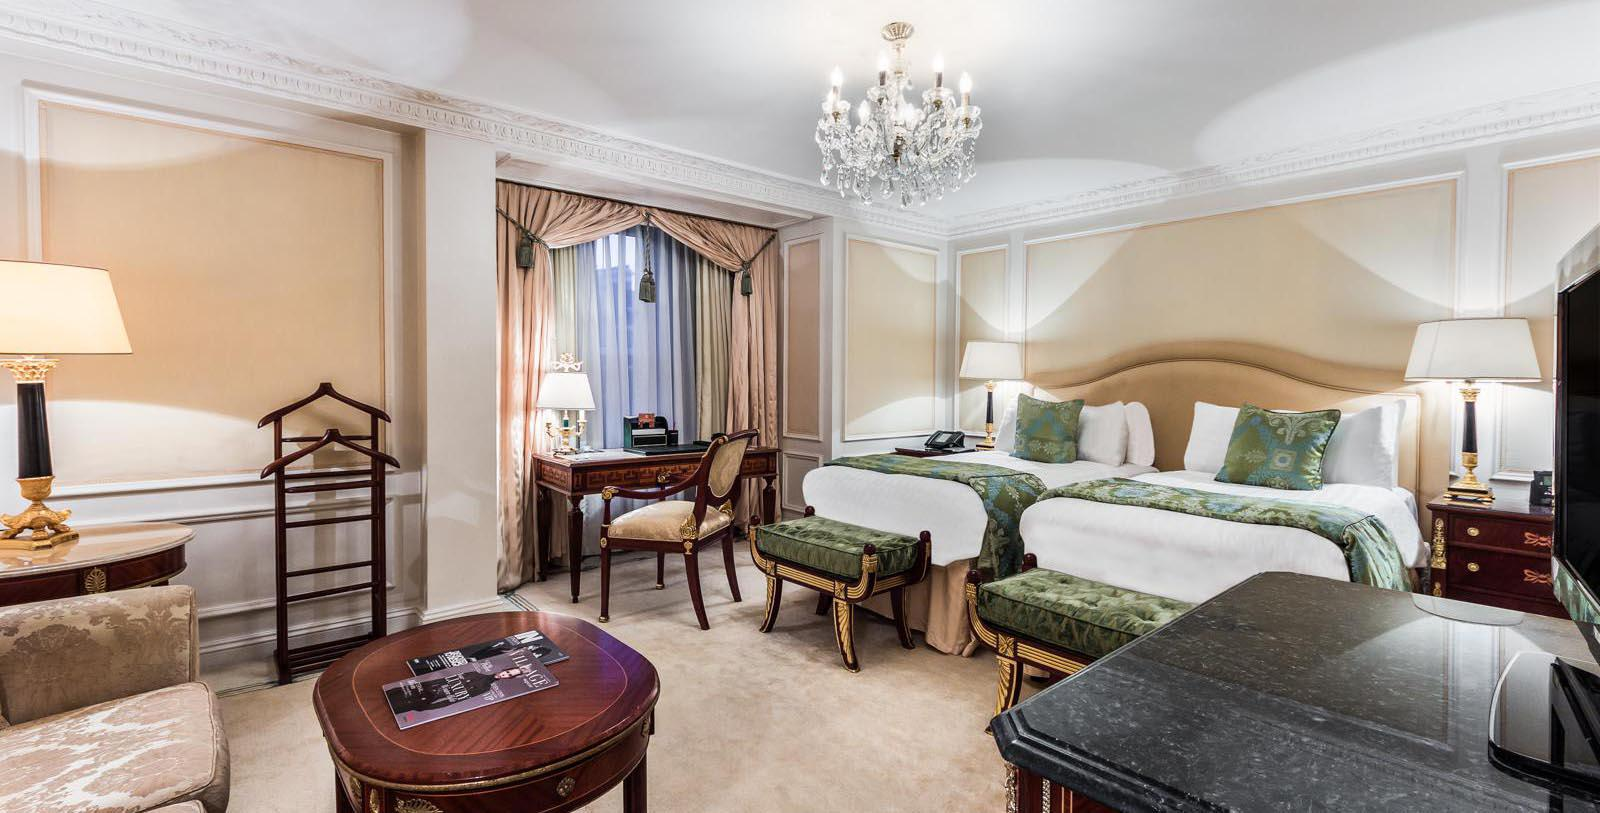 Image of Double Bed Guestroom at The Bentley London, 1880, Member of Historic Hotels Worldwide, in London, England, United Kingdom, Location Map